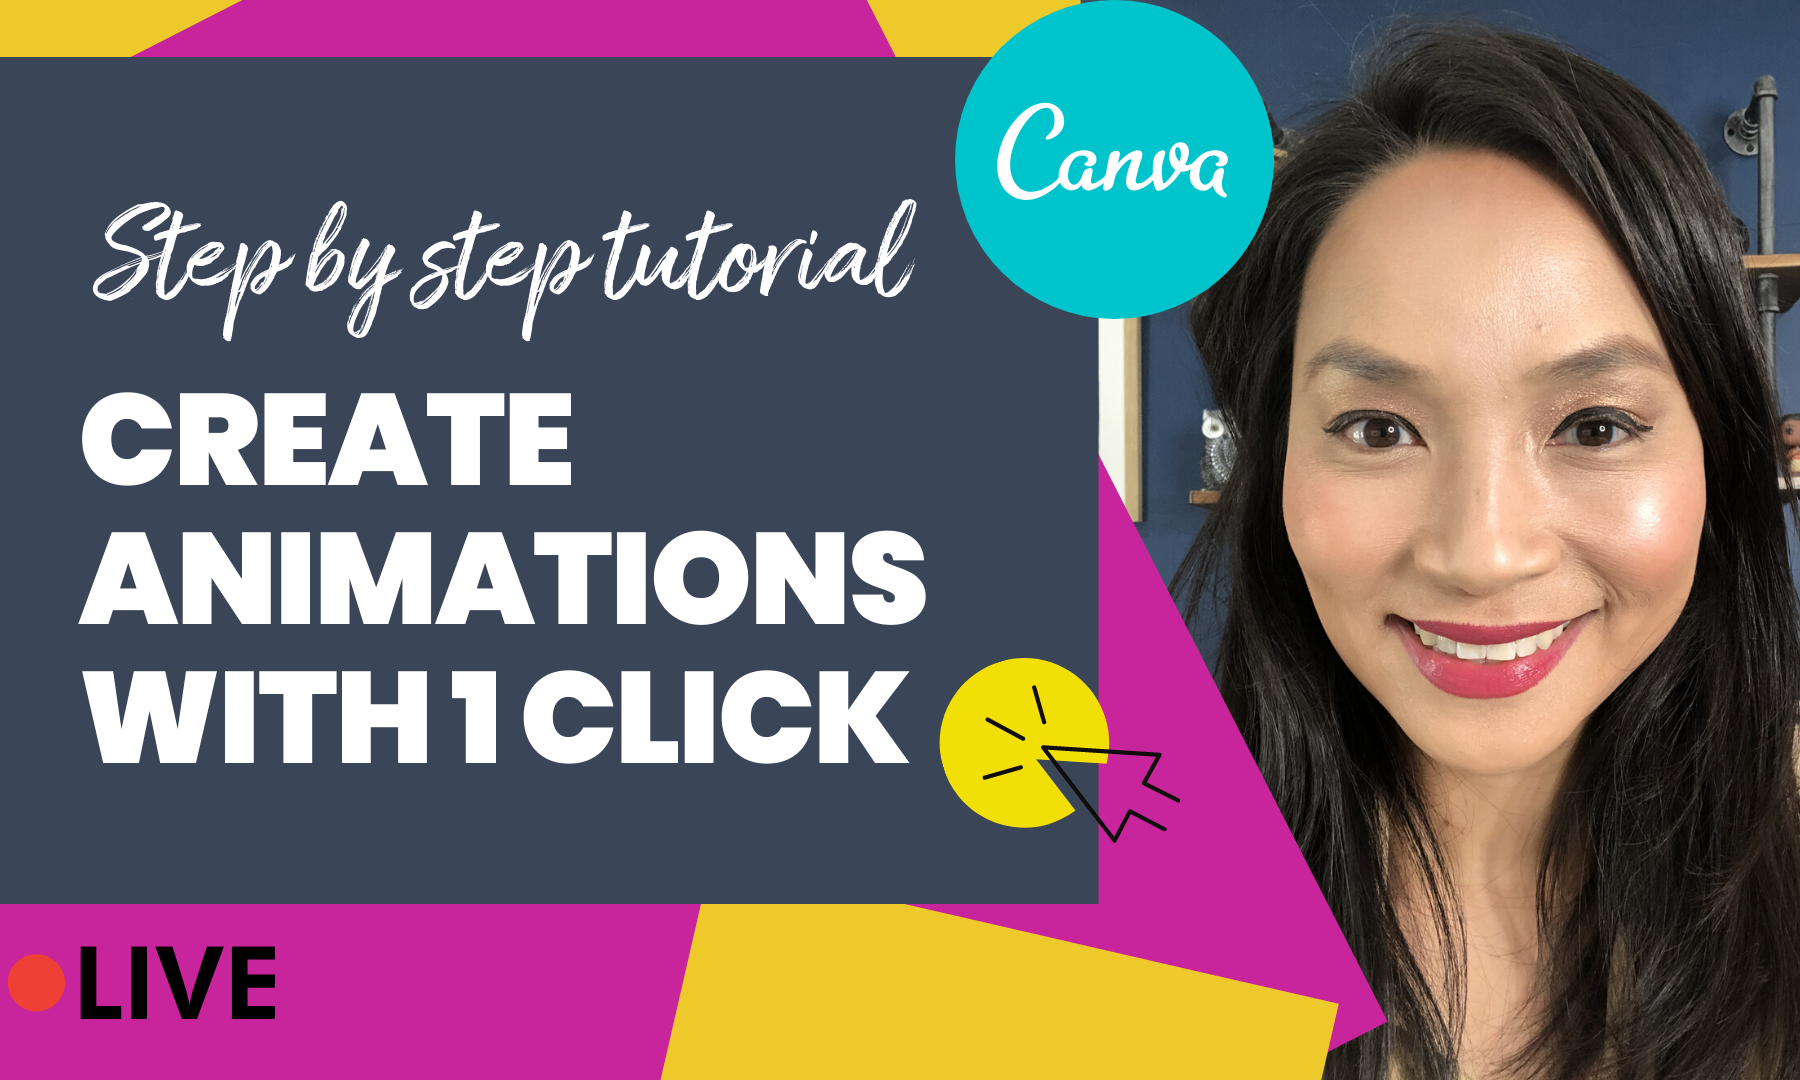 Canva Animations Tutorial